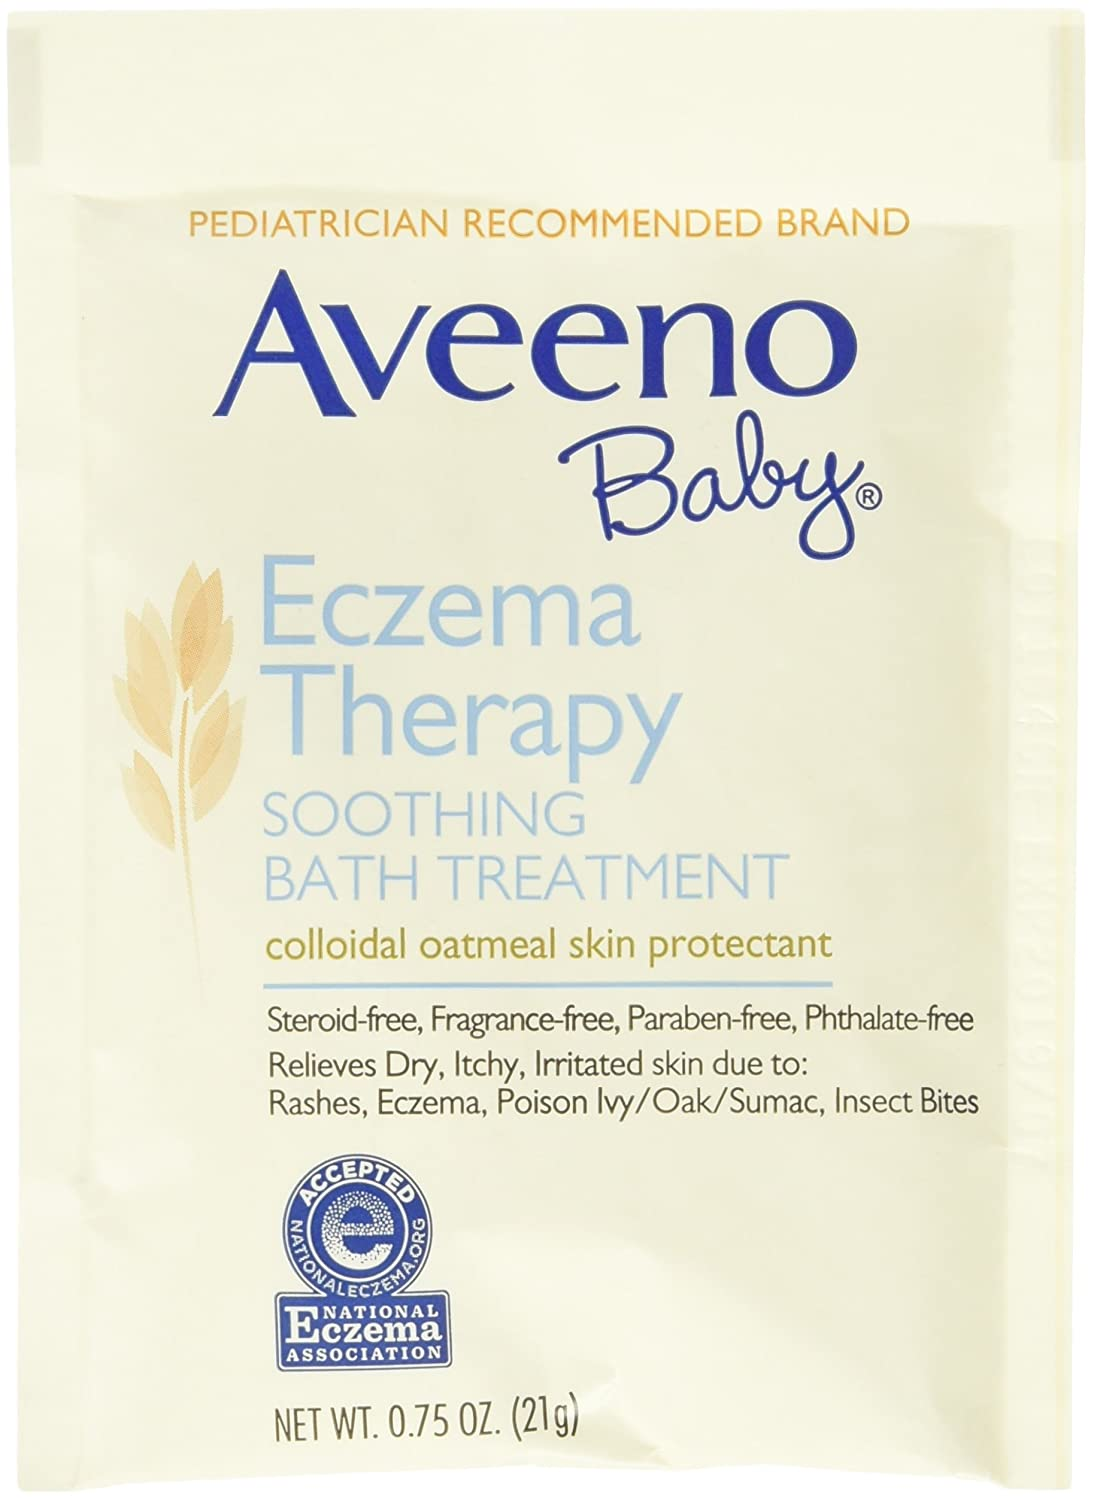 Aveeno Soothing Baby Bath Treatment, Single Use Packets - 5 ea J&J598755